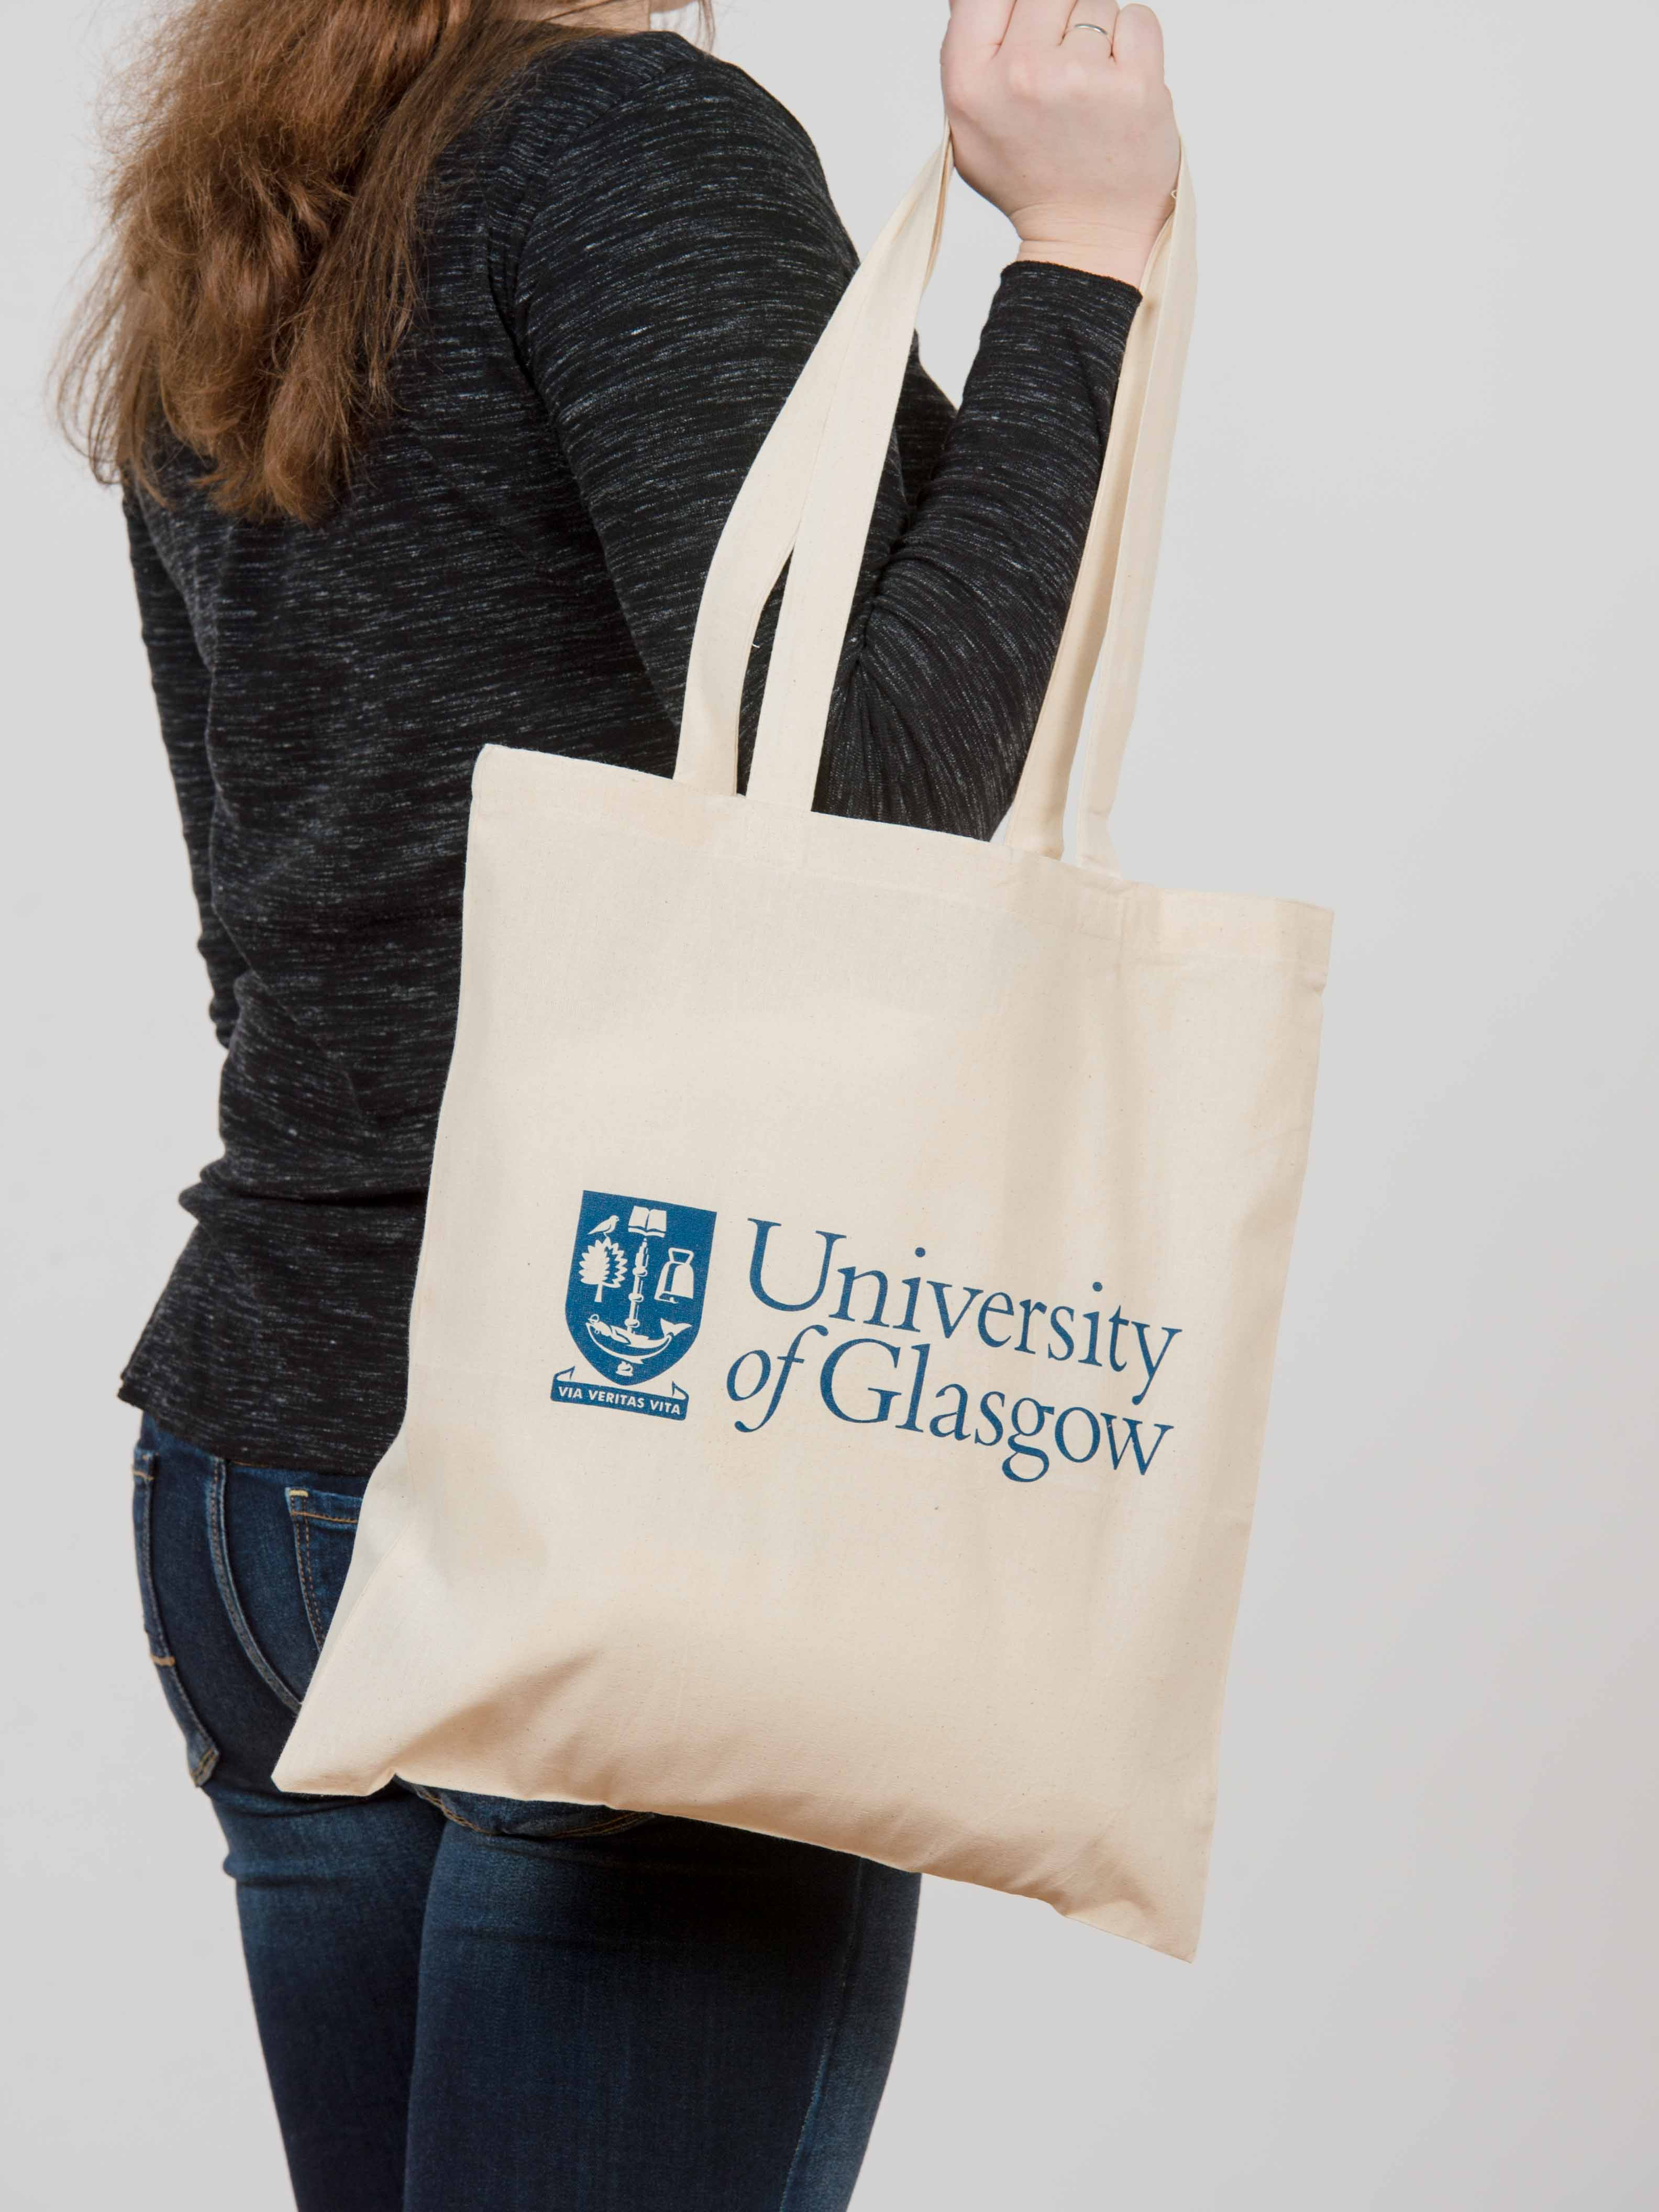 University of Glasgow Tote Bag (Blue Print)